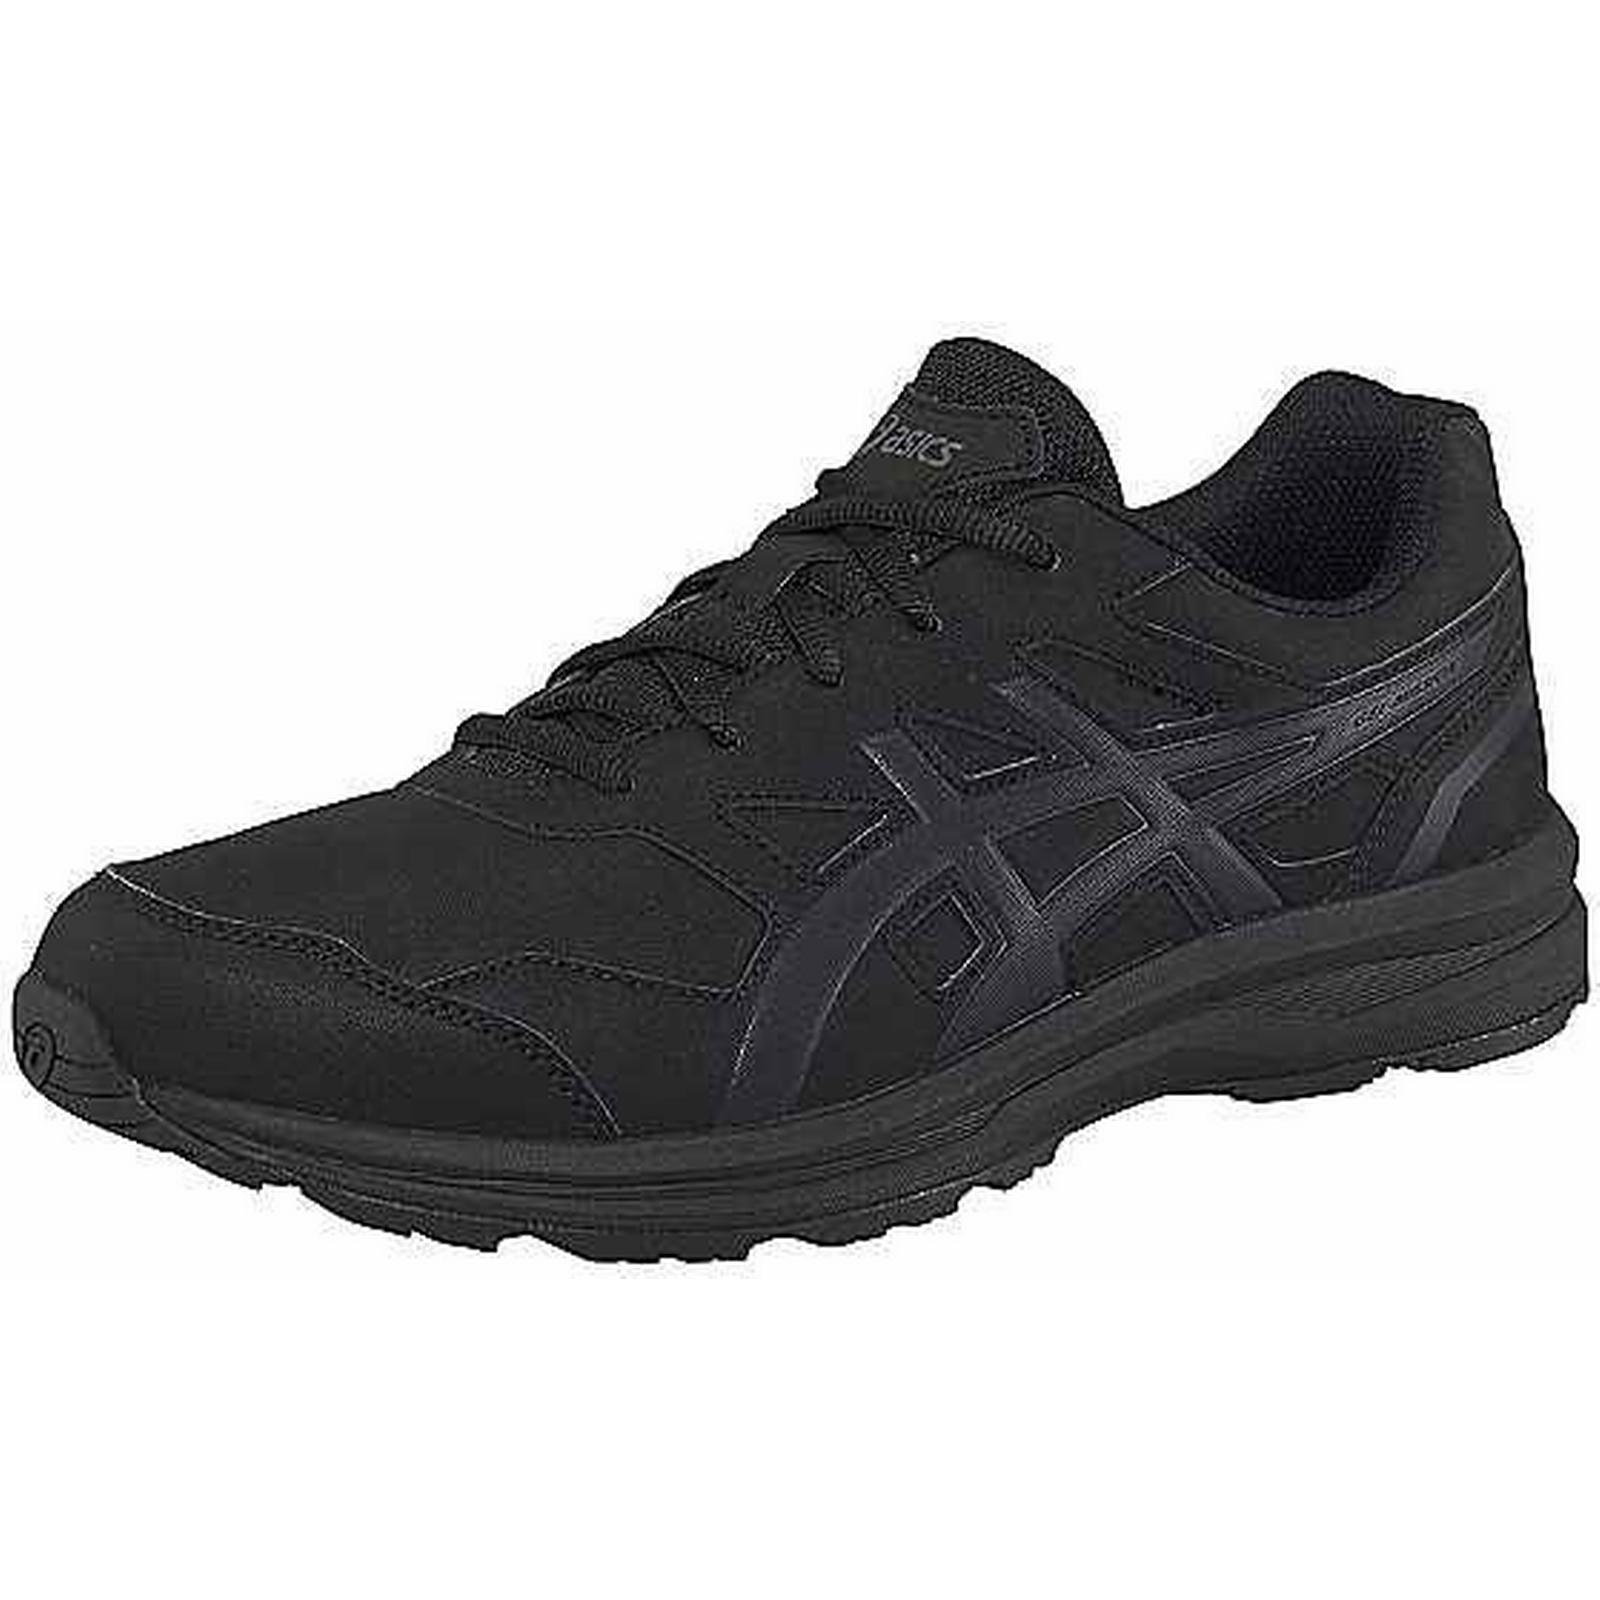 ASICS 'Gel Mission 3' Outlet Walking Shoes by Asics-Men's/Women's-Sale Outlet 3' e9ebaa